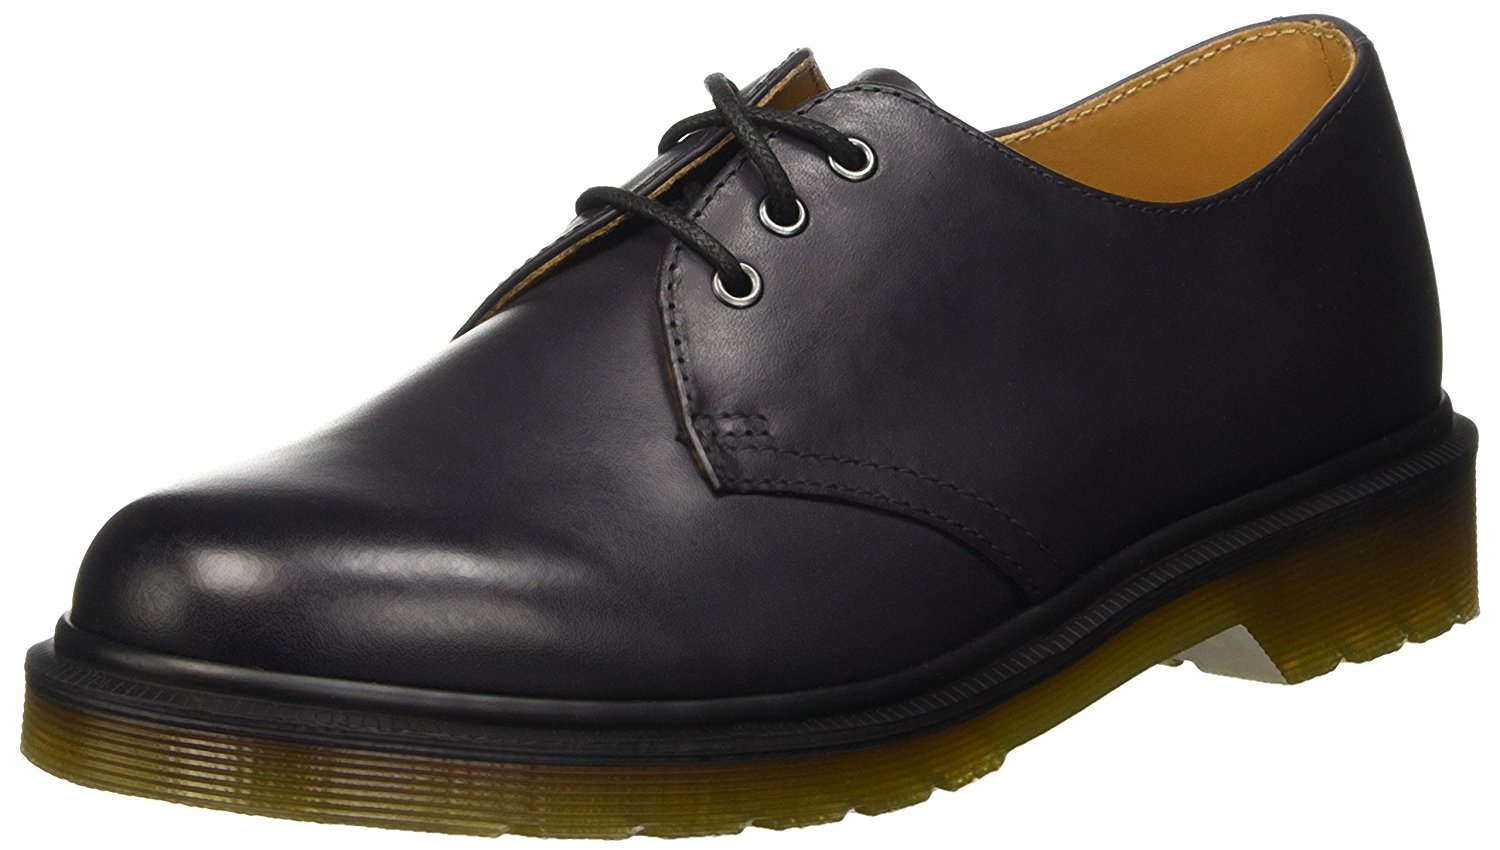 Dr. Martens Men's 1461 Fashion Oxfords Grey Leather 13 M UK 14 M US by